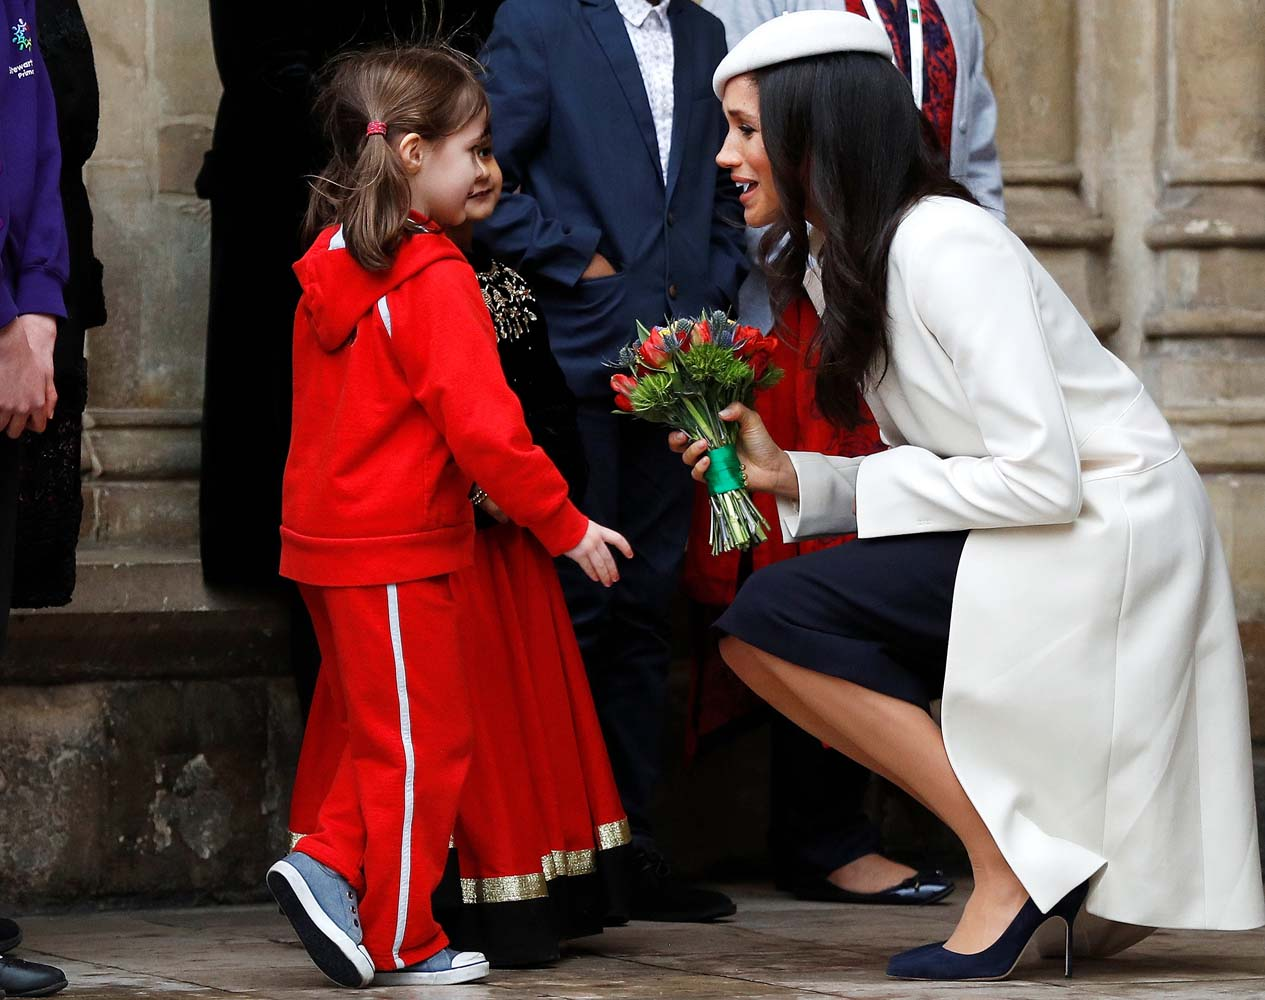 Britain's Prince Harry's fiancee Meghan Markle receives a bouquet of flowers after attending the Commonwealth Service at Westminster Abbey in London, Britain, March 12, 2018. REUTERS/Peter Nicholls